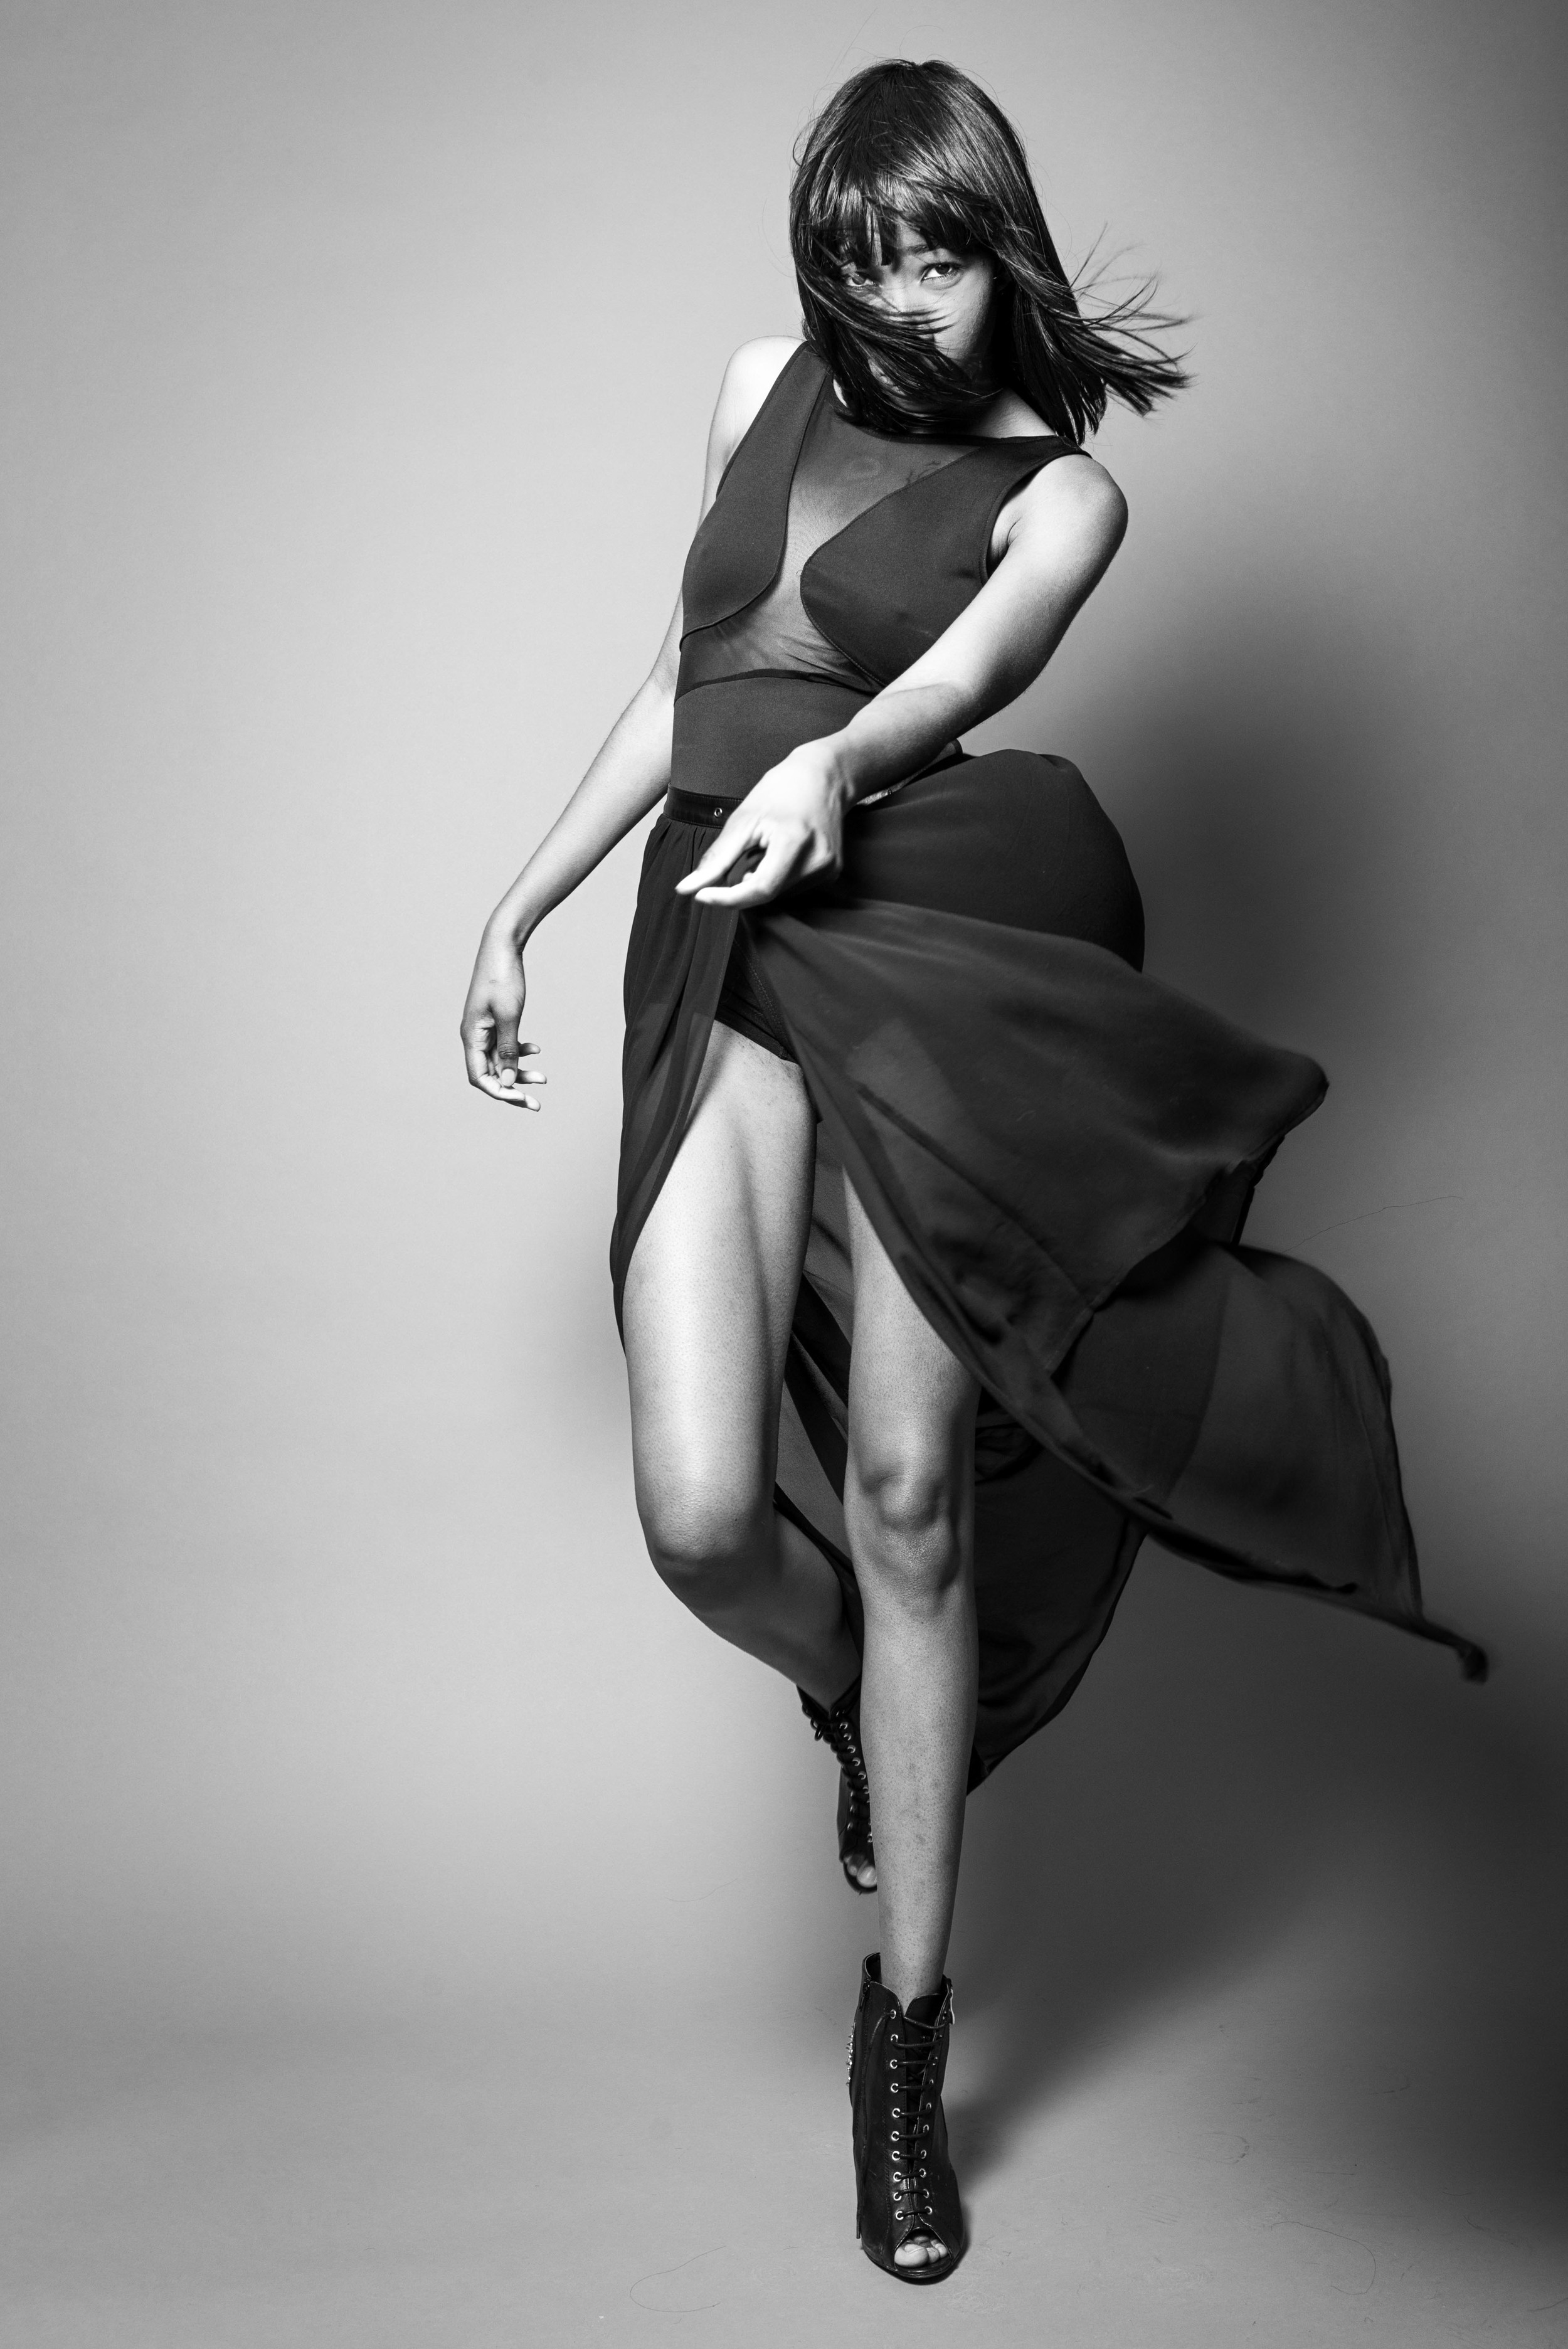 Model Jasmine Bynum from Chicago graced my studio. Long and tall, she had skills